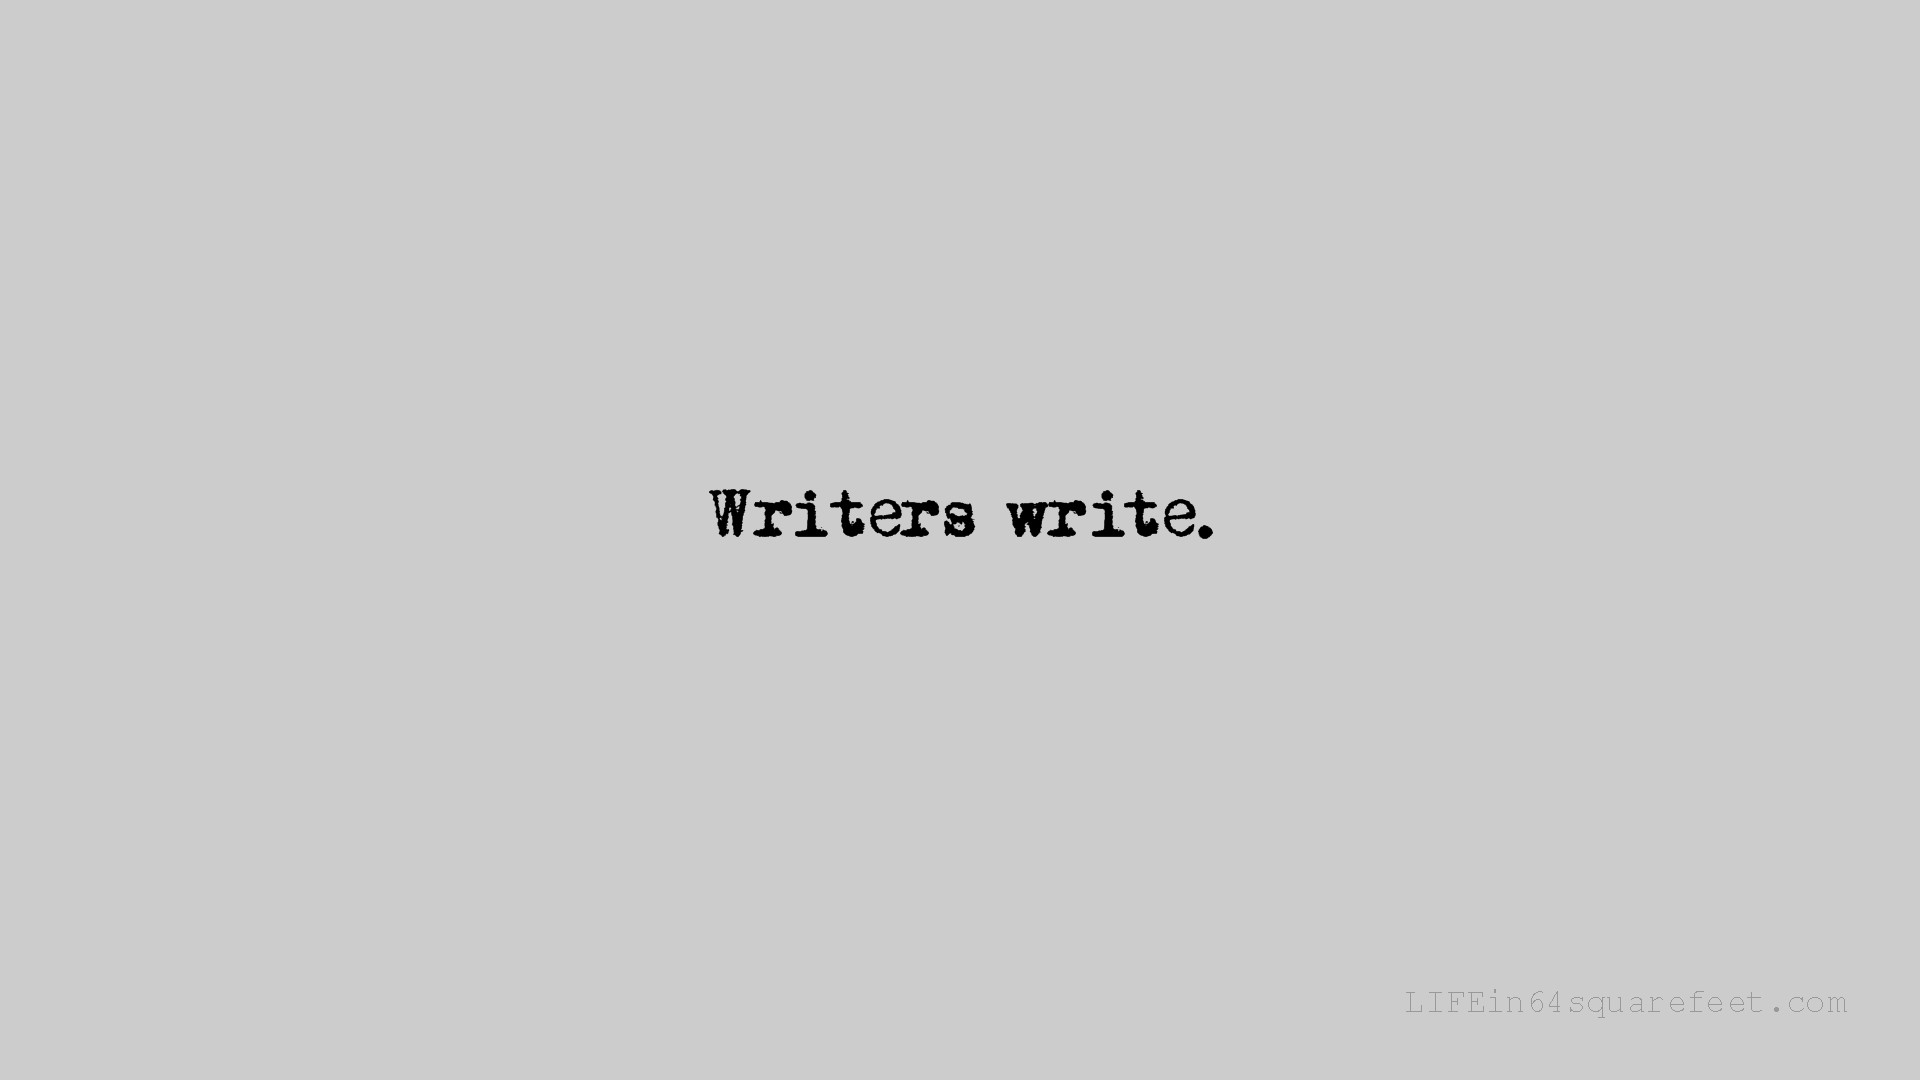 Download Desktop Wallpapers for Writers Lifein64SquareFeetcom 1920x1080